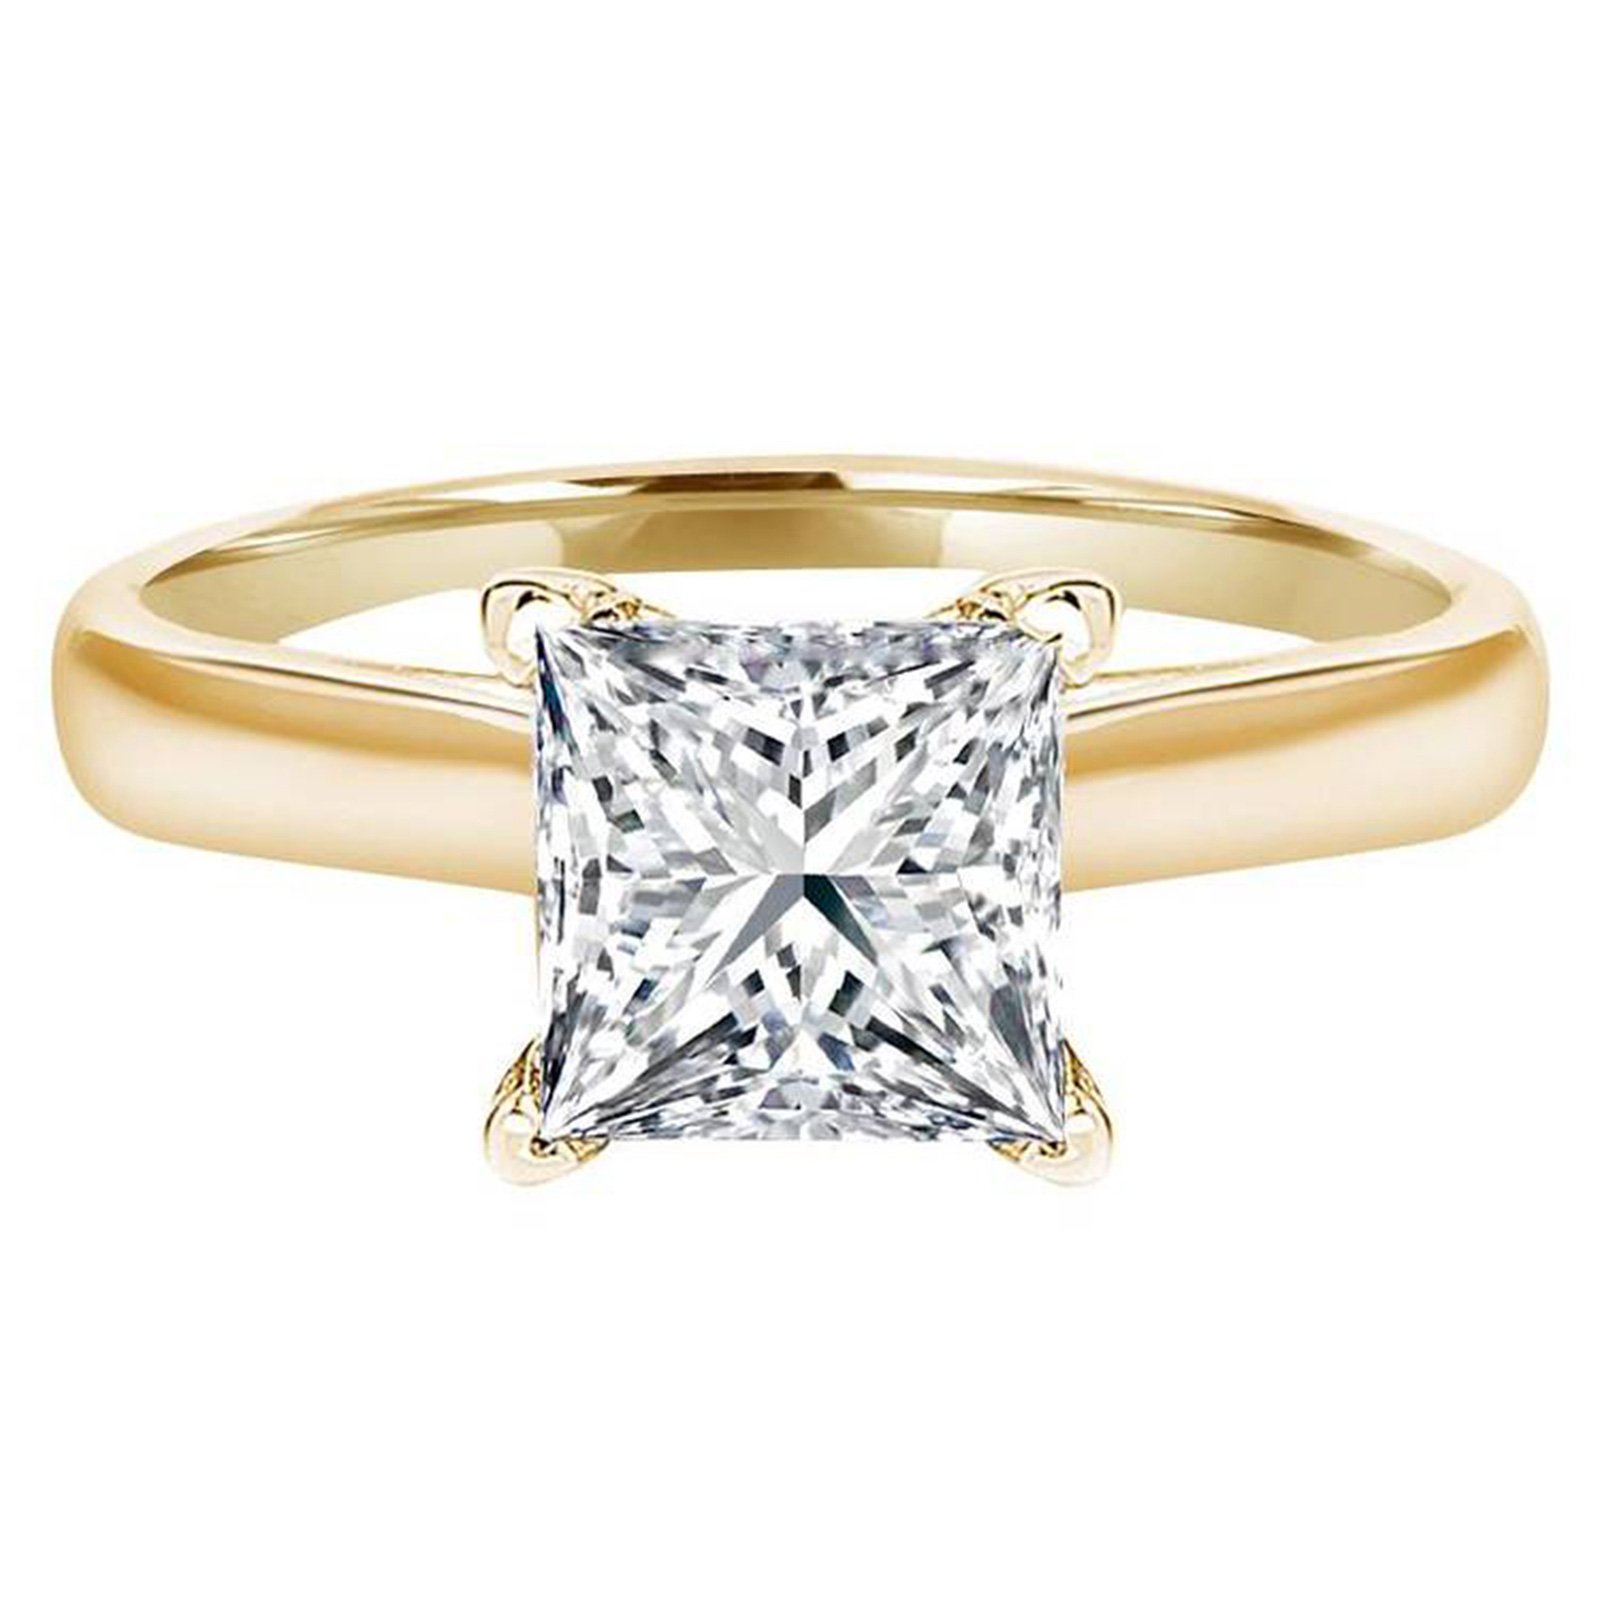 0.50 ct Brilliant Princess Cut Solitaire Highest Quality Moissanite Ideal VVS1 D 4-Prong Engagement Wedding Bridal Promise Anniversary Ring in Solid Real 14k Yellow Gold for Women